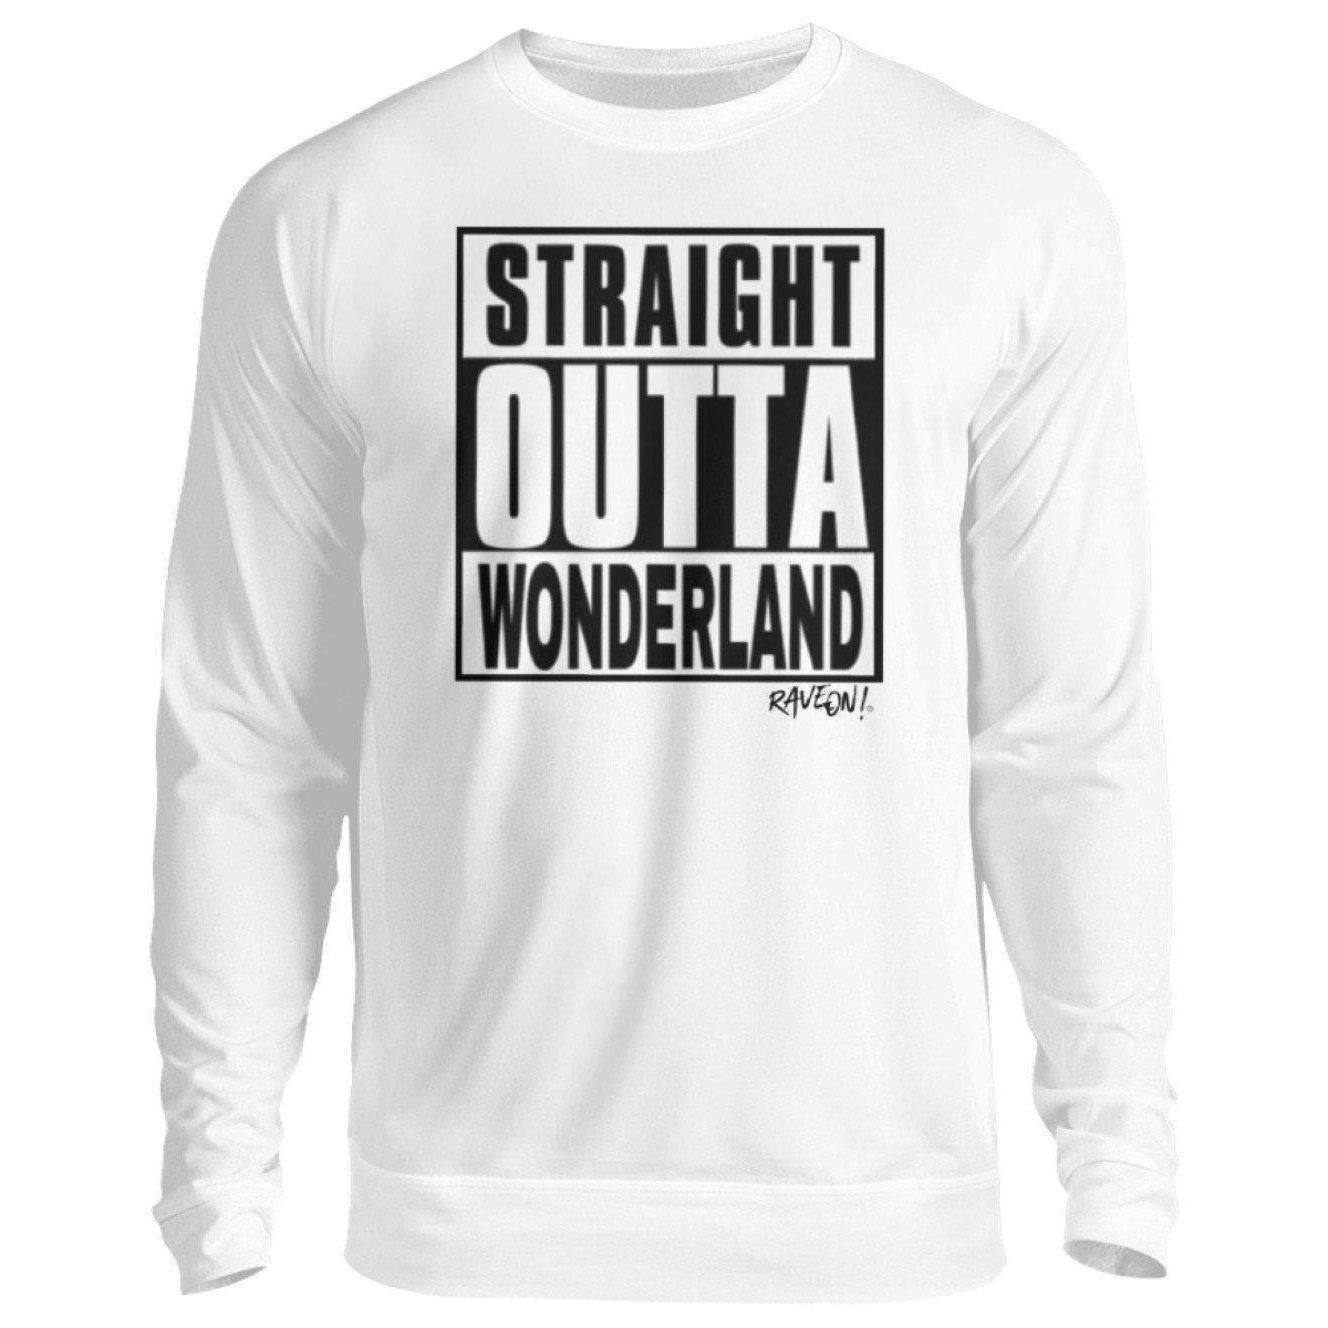 STRAIGHT OUTTA WONDERLAND by Rave On!® - Unisex Pullover Unisex Sweatshirt Arctic White / S - Rave On!® der Club & Techno Szene Shop für Coole Junge Mode Streetwear Style & Fashion Outfits + Sexy Festival 420 Stuff